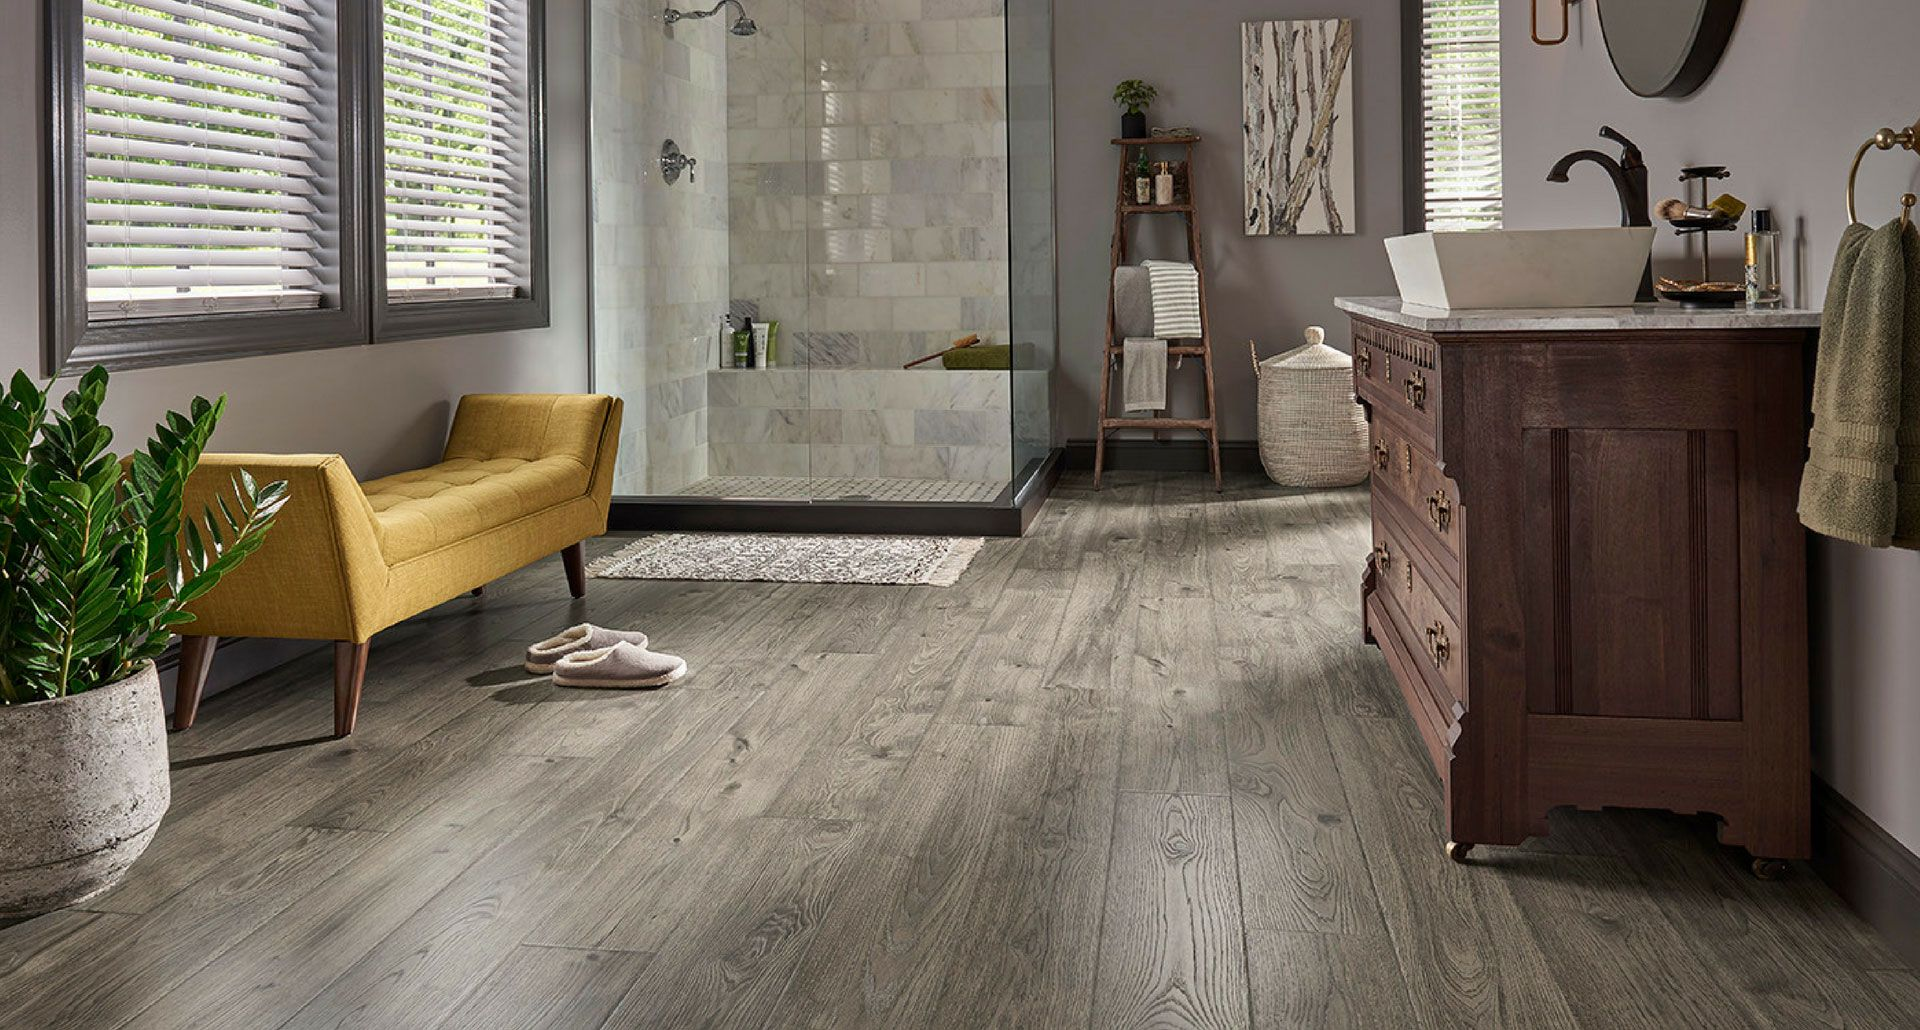 Anchor Grey Oak Laminate Floor Natural Wood Look 12mm